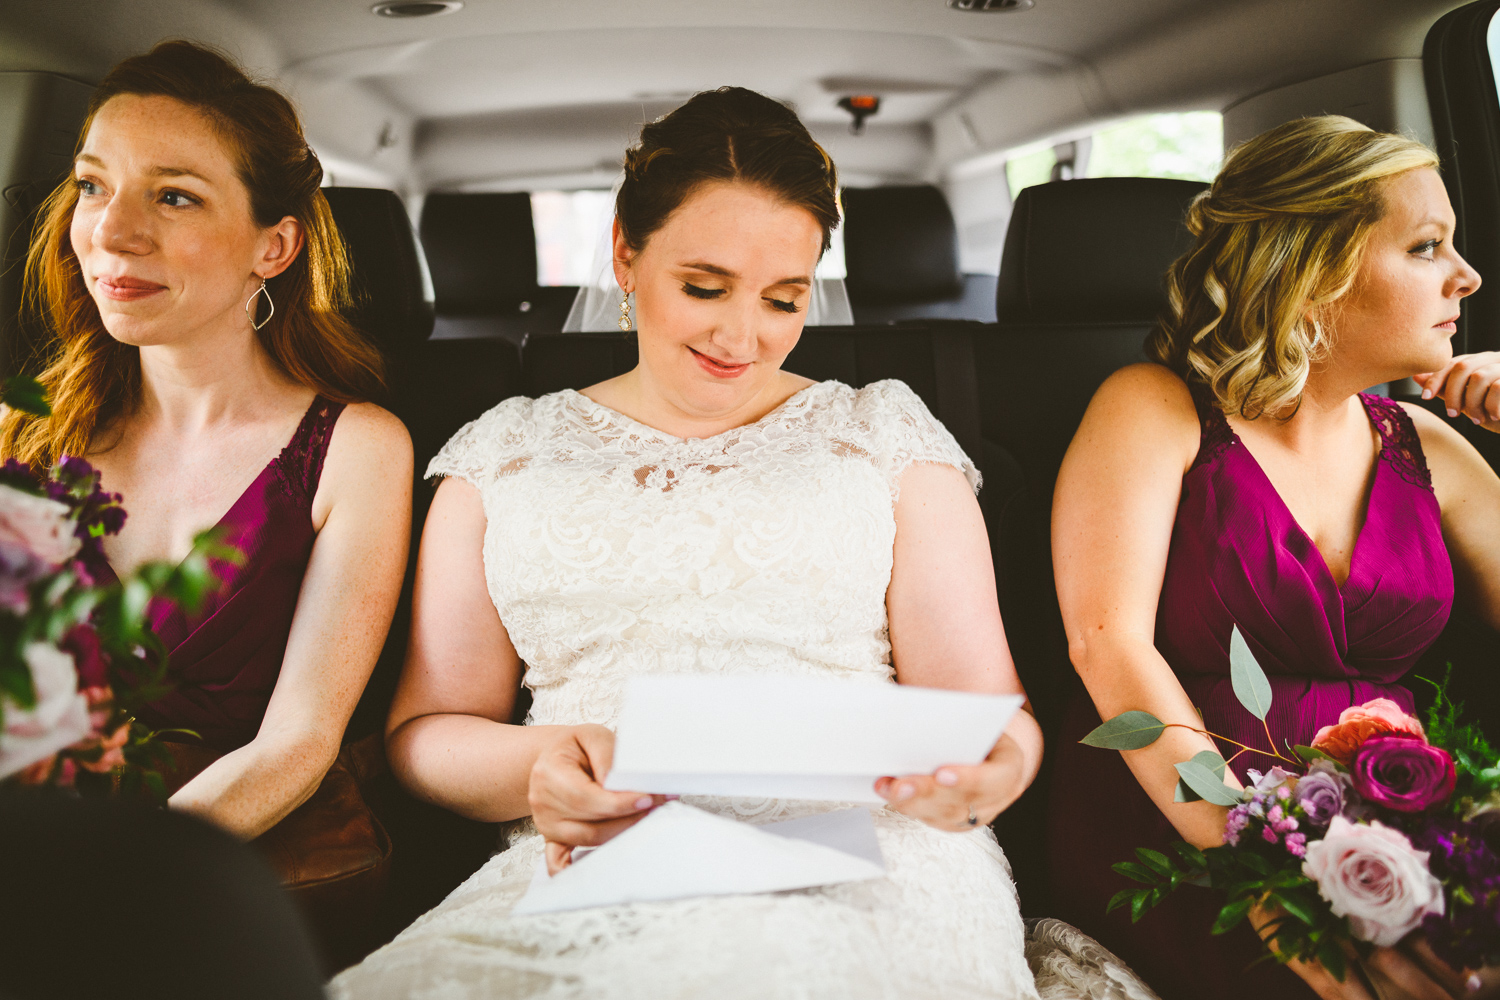 003 - bride reads a note from her husband to be on the way to the chapel to get married.jpg